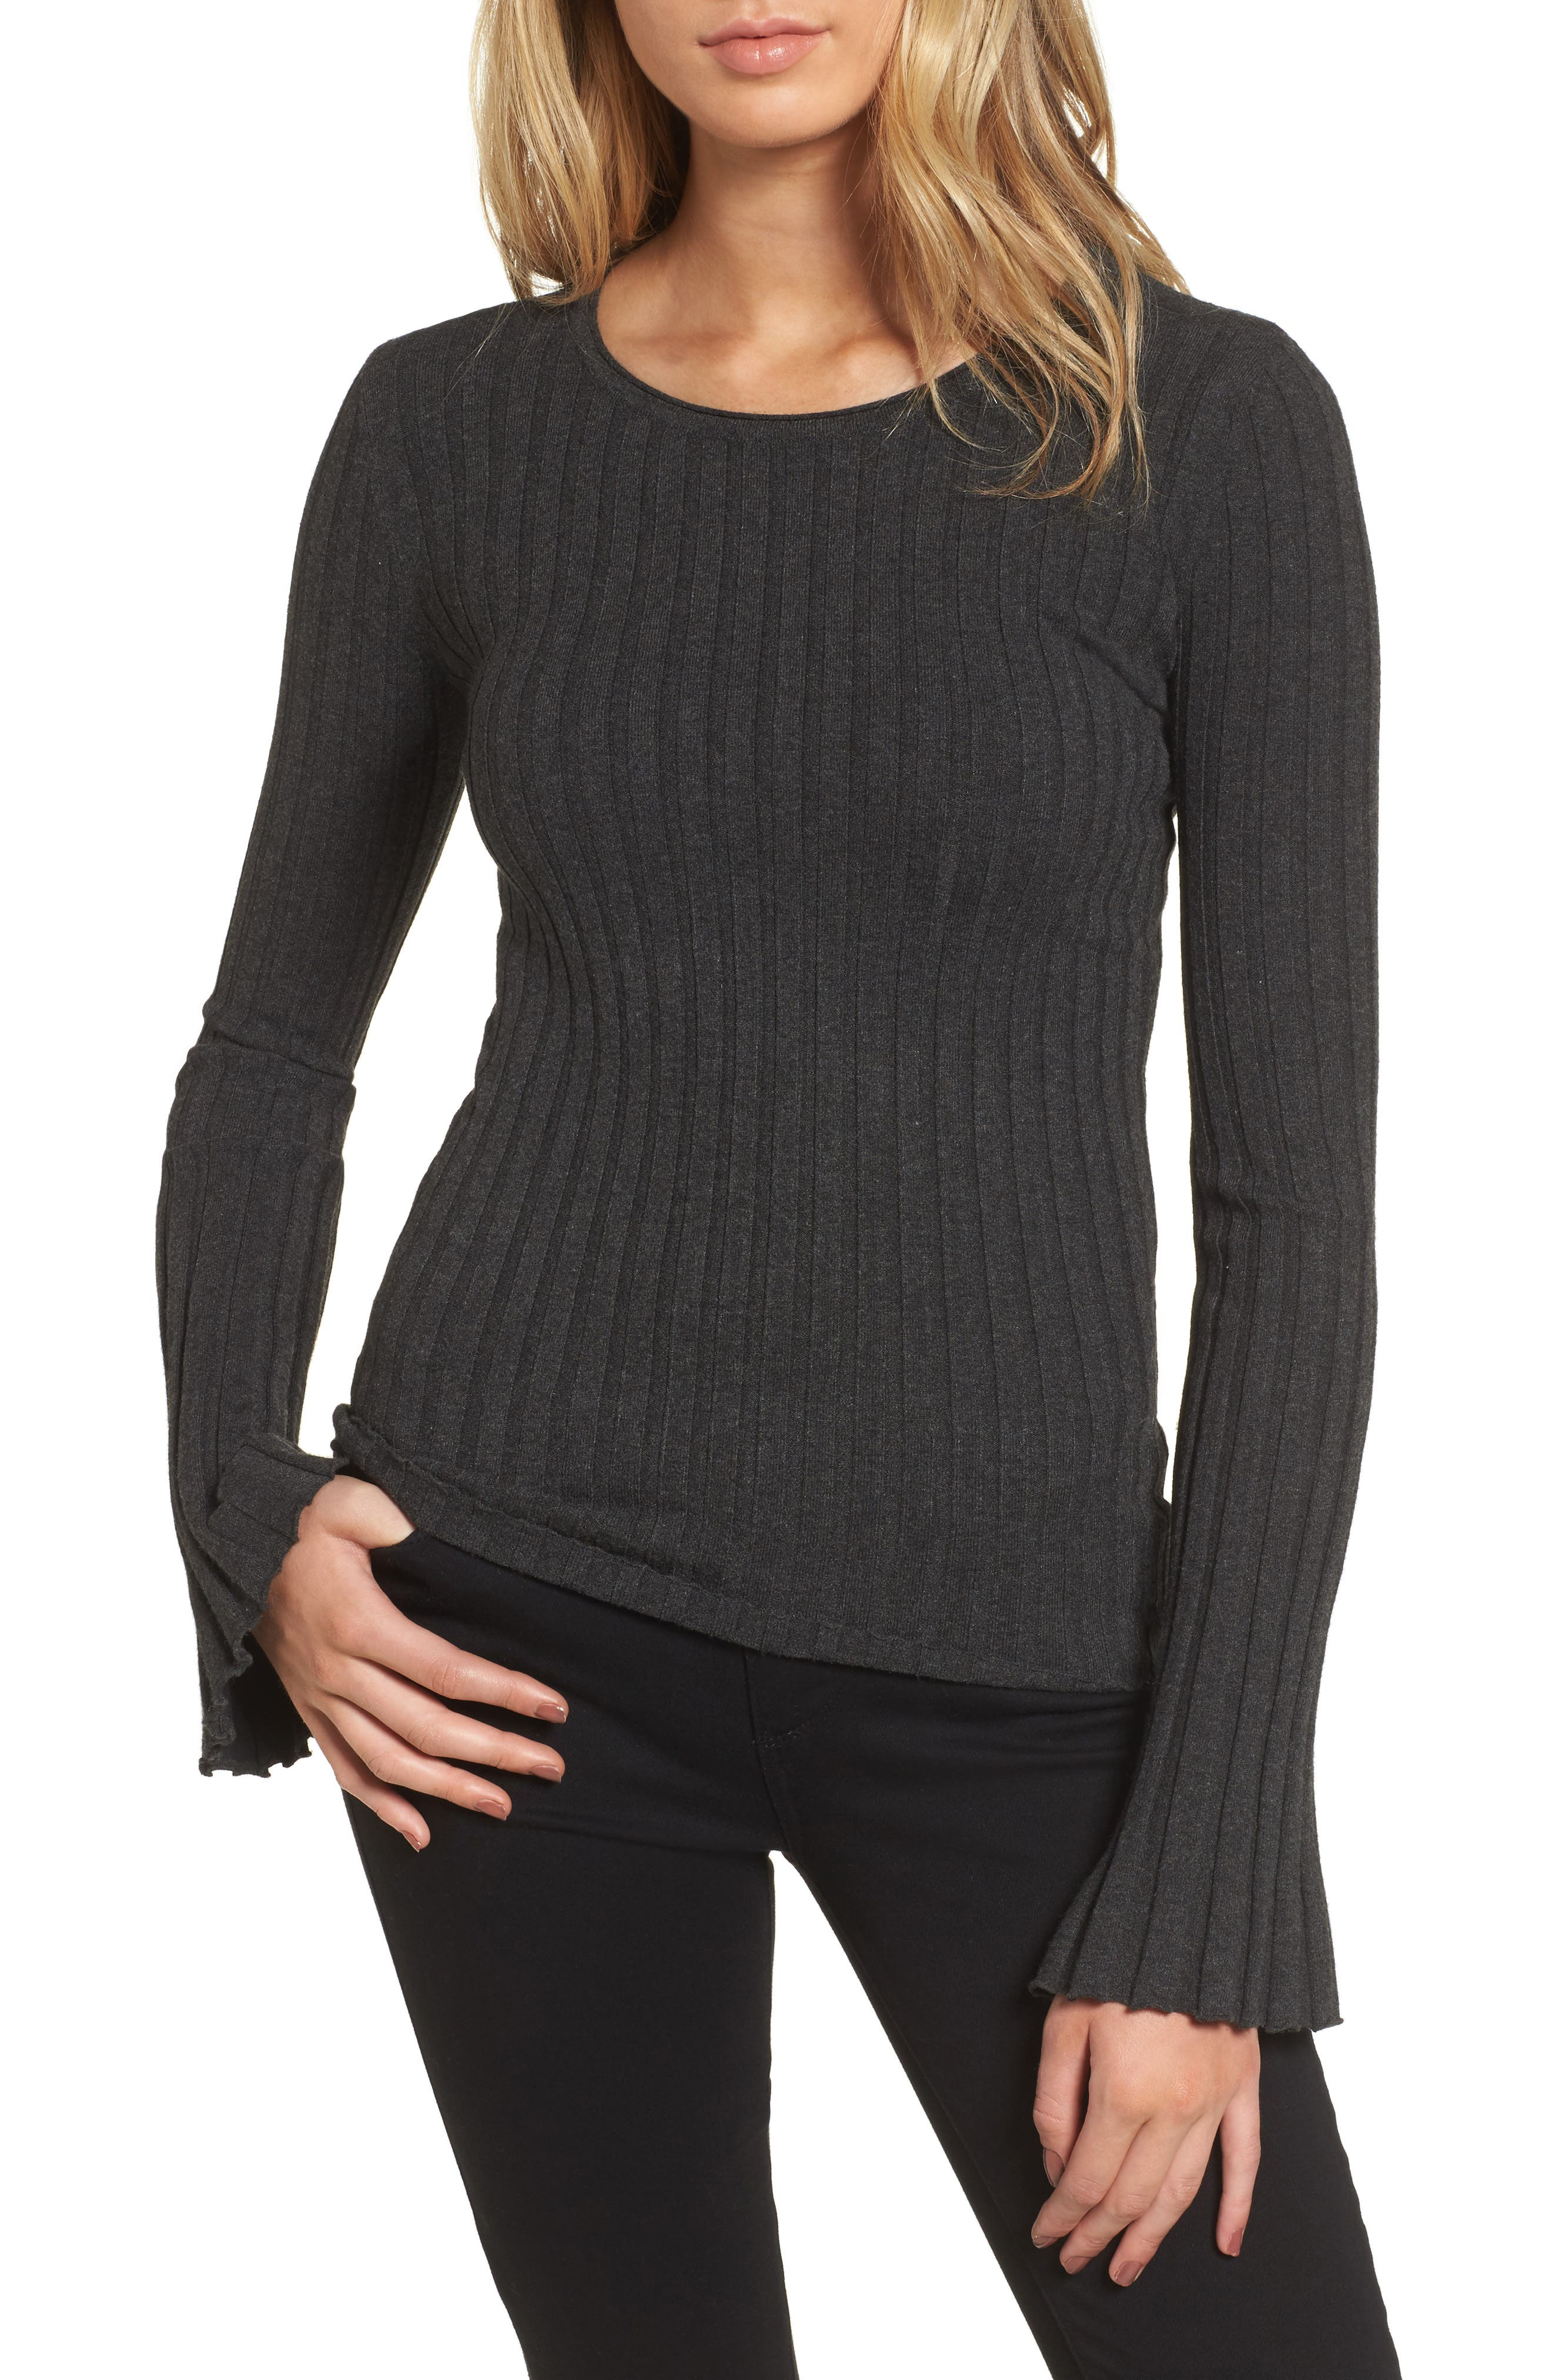 Enchanted Forest Sweater,                             Main thumbnail 1, color,                             421